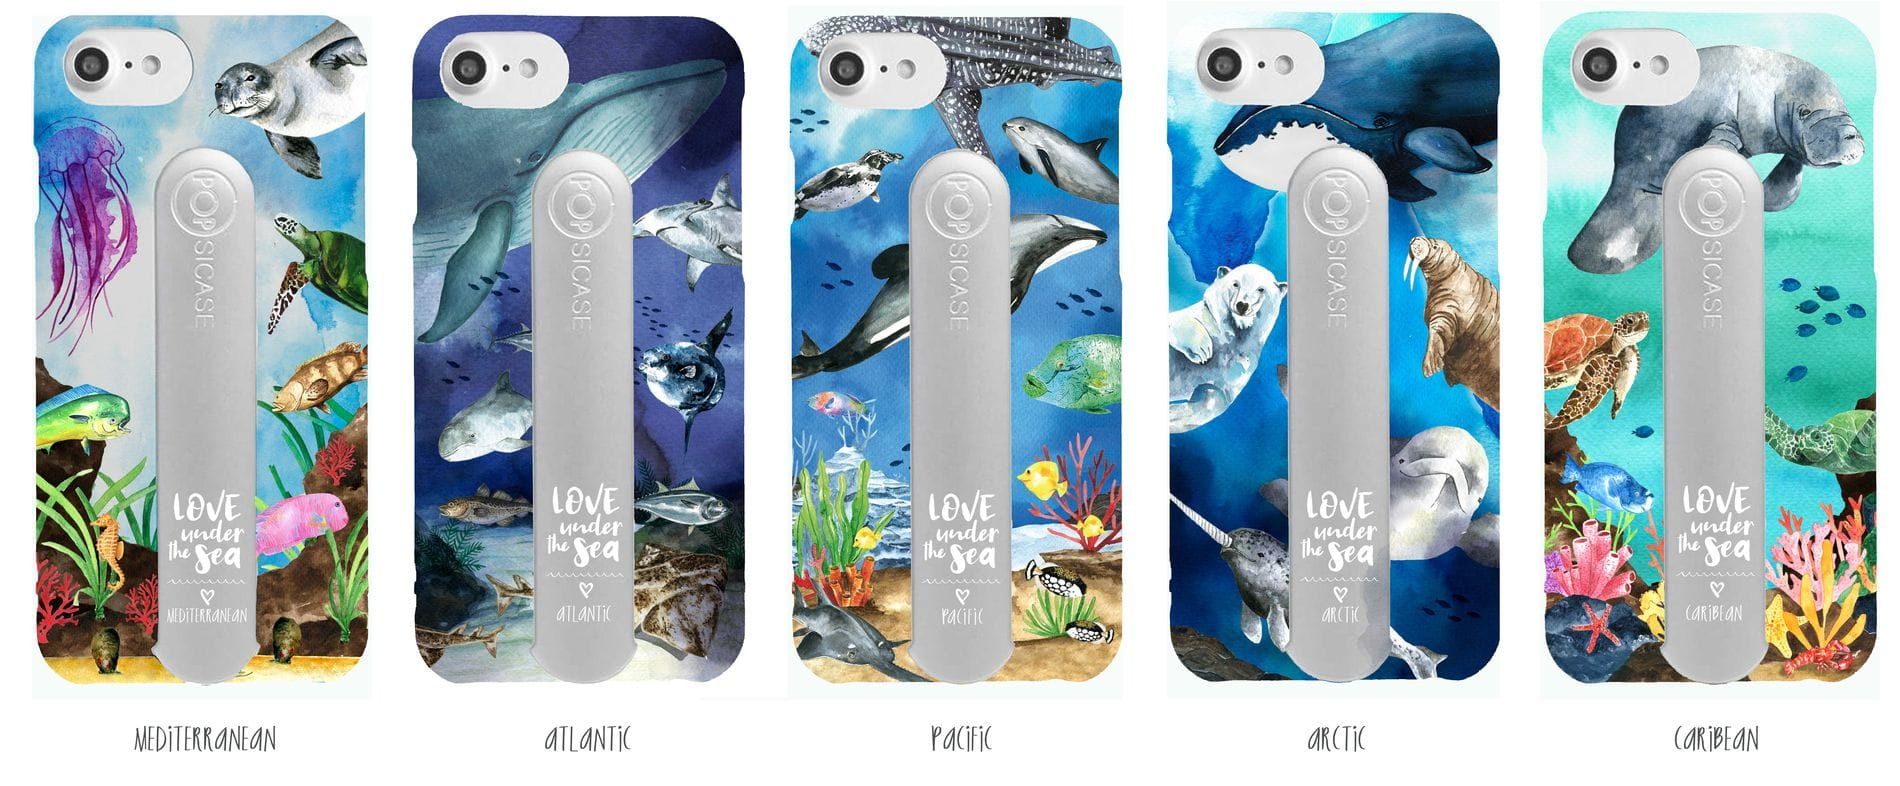 Why Love under the Sea Collection?